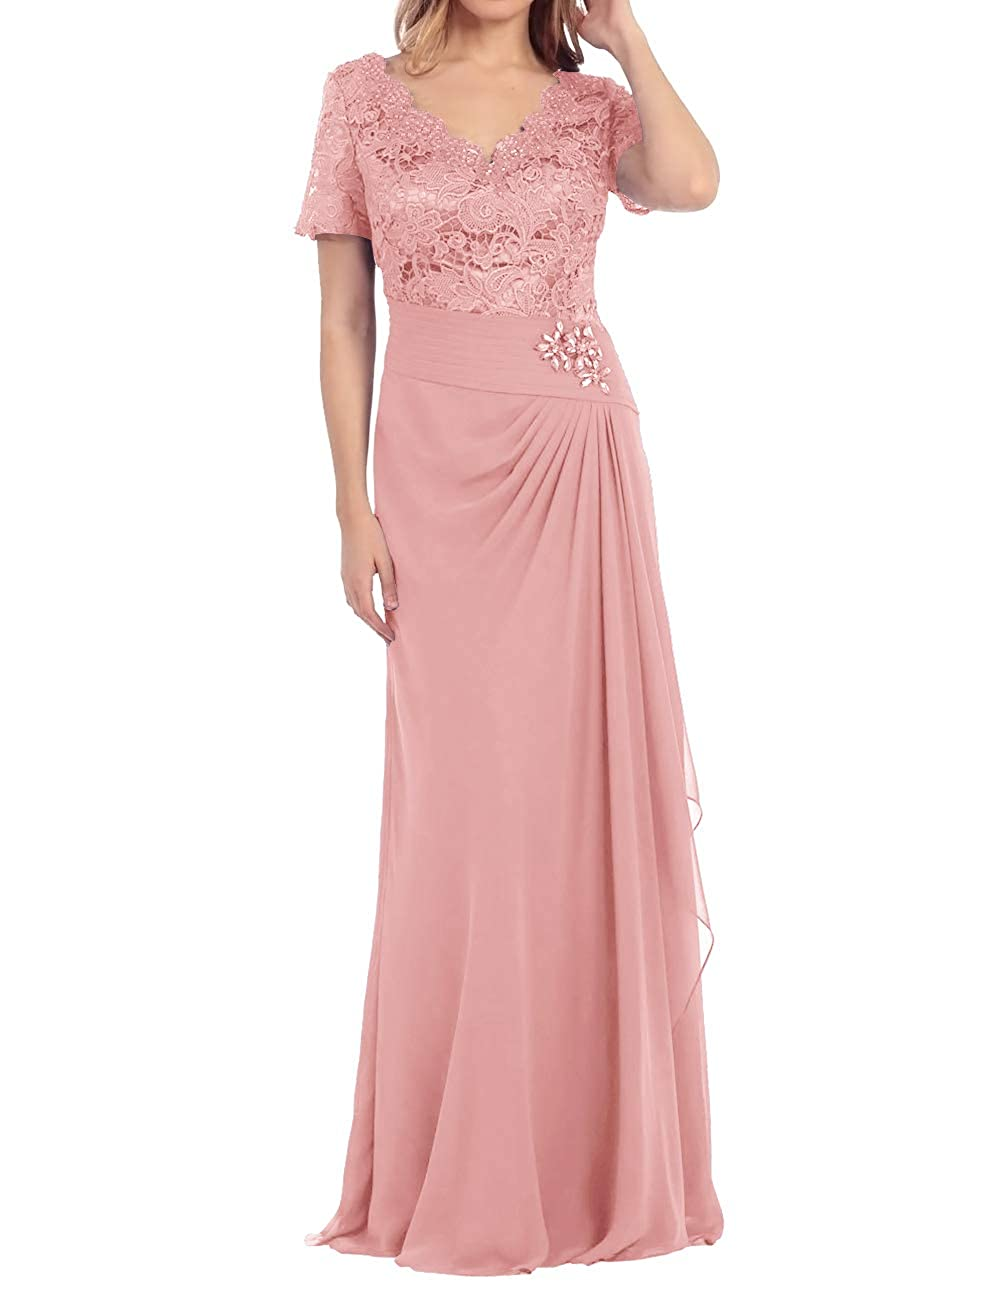 bluesh Mother of The Bride Dress Beaded Lace Prom Evening Gowns